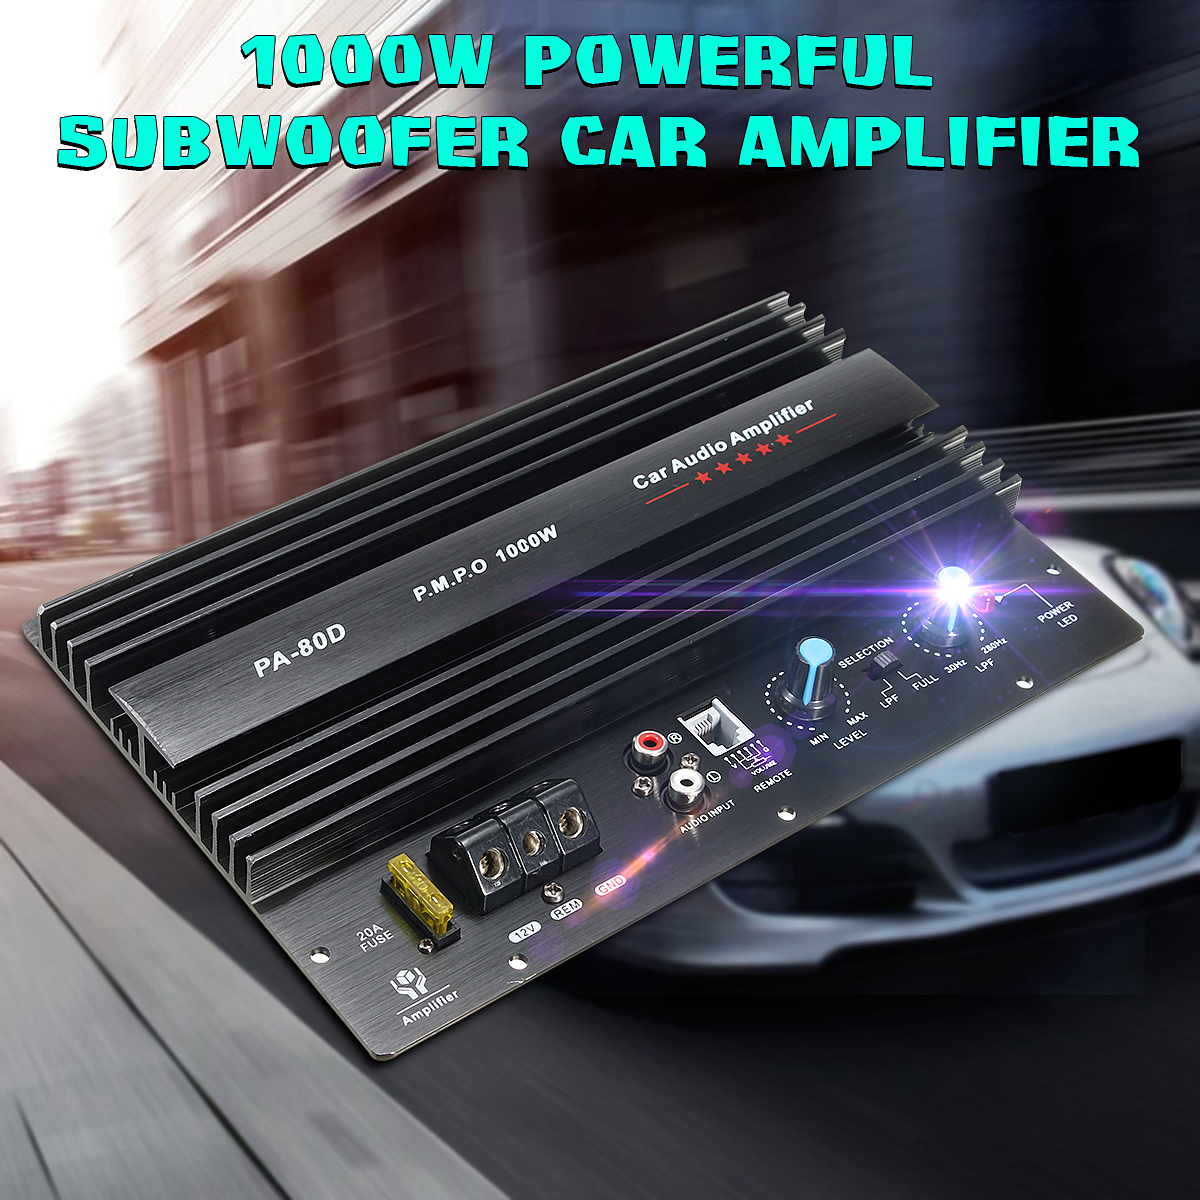 KROAK 12V 1000W <font><b>Car</b></font> <font><b>Audio</b></font> Subwoofers <font><b>Amplifier</b></font> board Mono <font><b>Car</b></font> <font><b>Audio</b></font> Power <font><b>Amplifier</b></font> Powerful Bass Subwoofers <font><b>DIY</b></font> Amp 10 Inch image